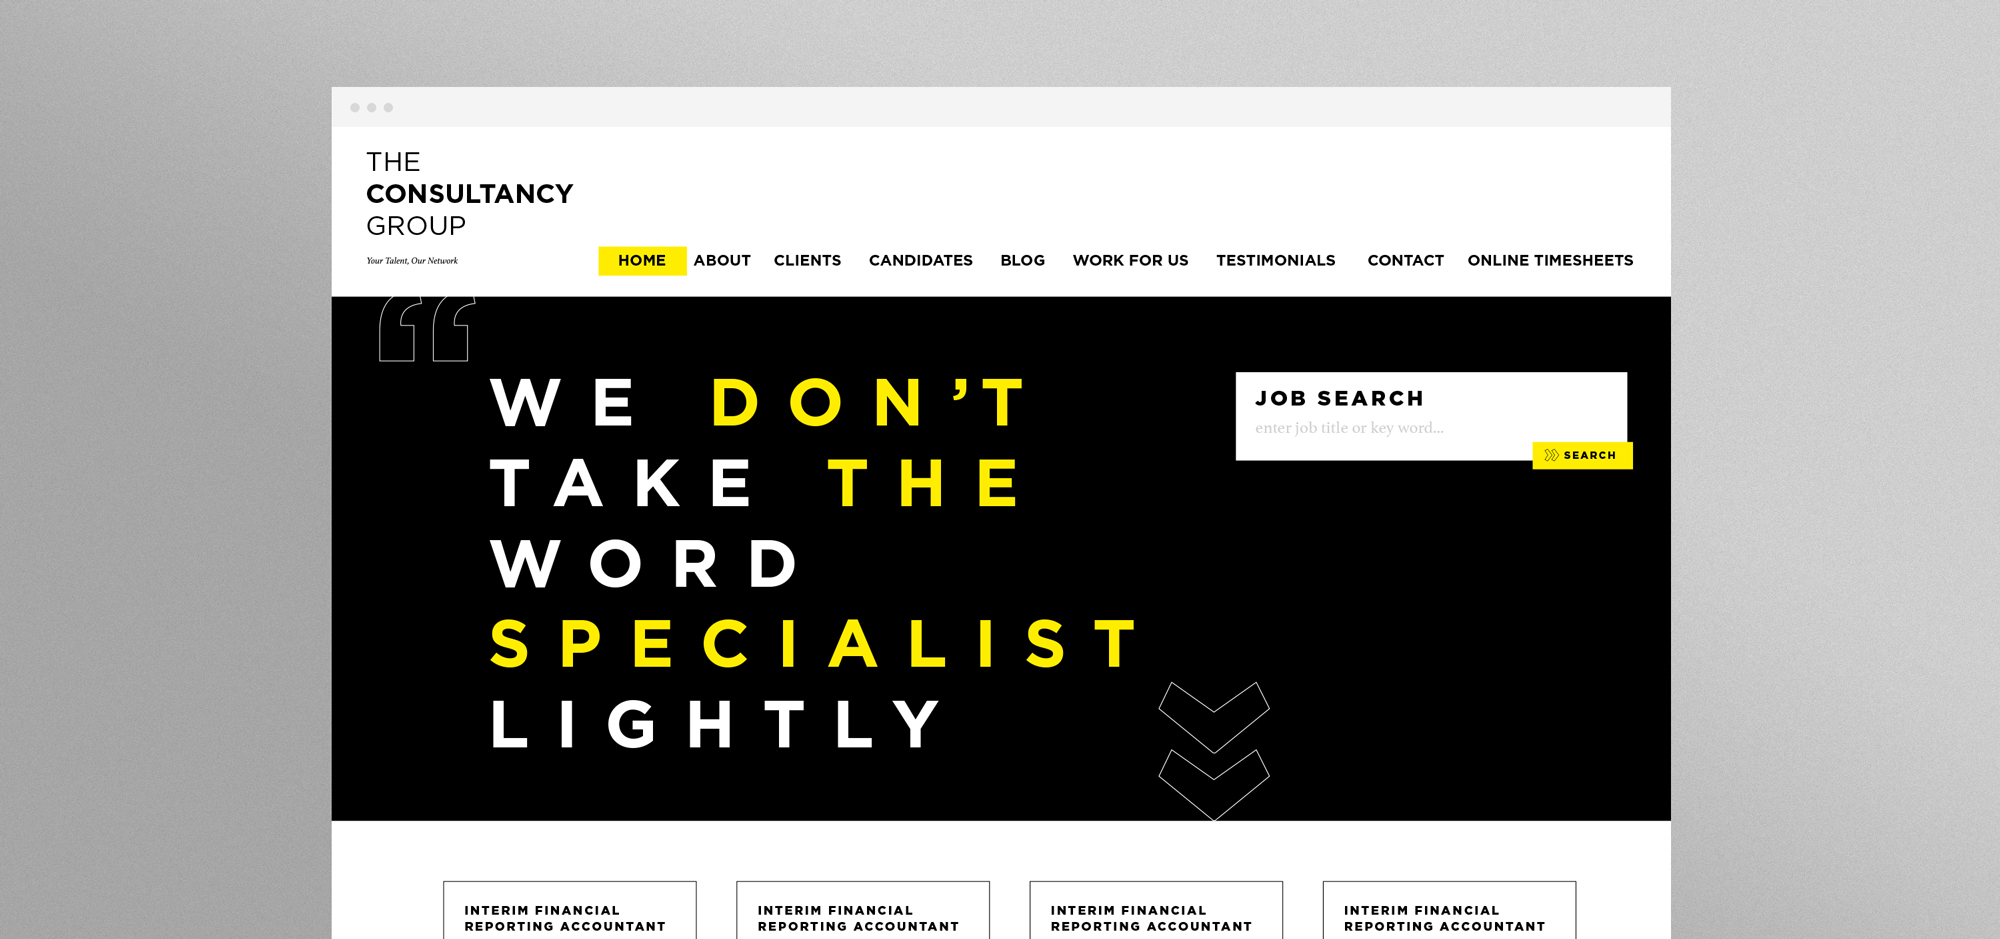 The Consultancy Group website